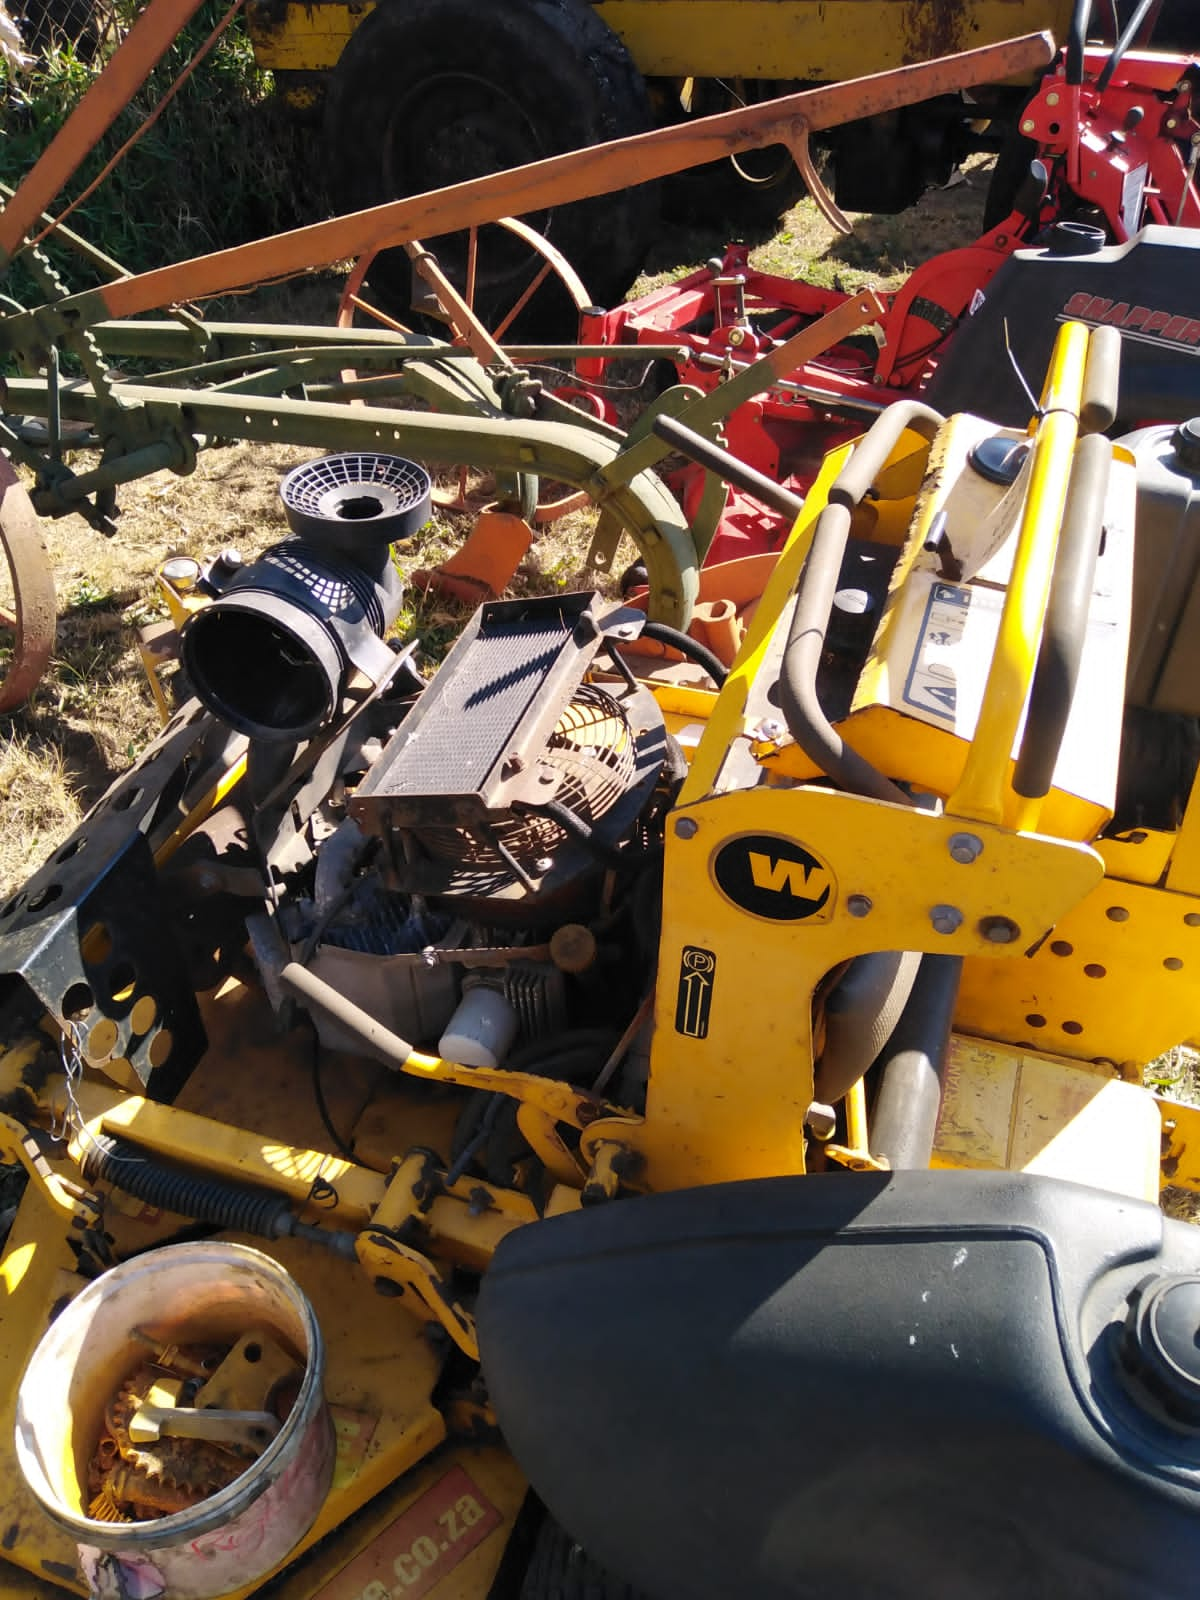 Industrial lawnmower spares for sale